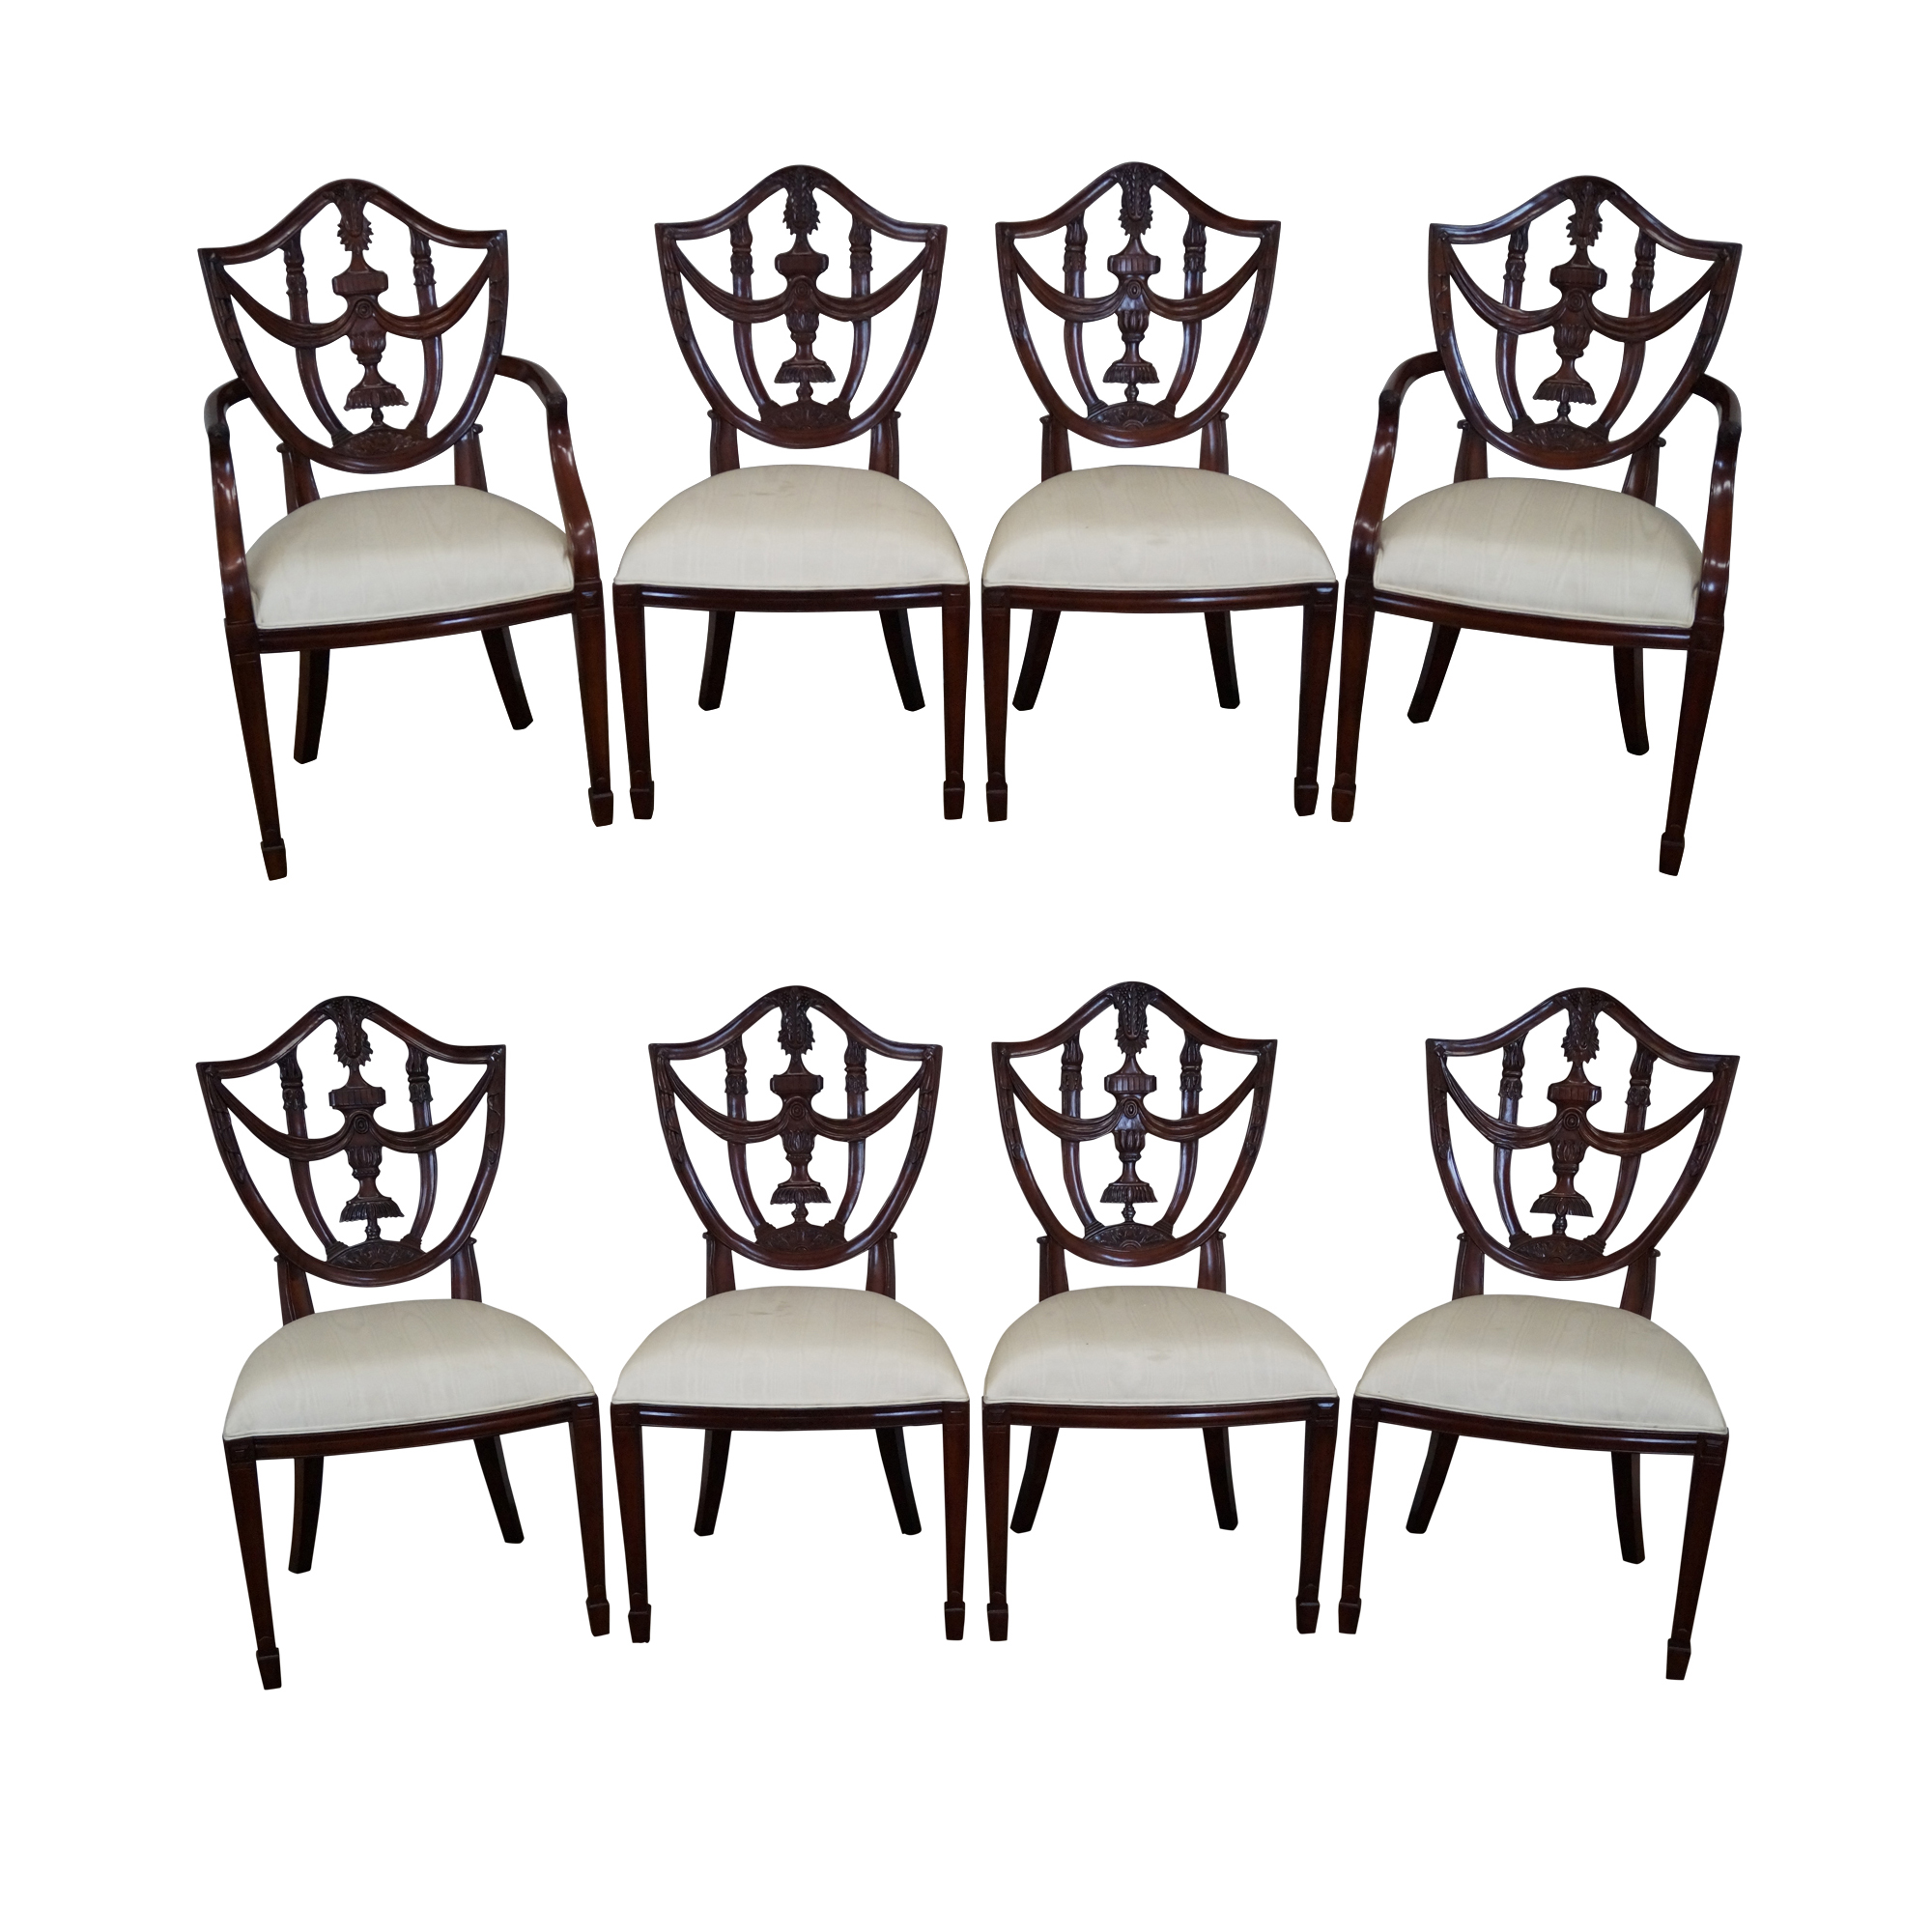 Maitland Smith Mahogany Shield Back Chairs 8 Chairish